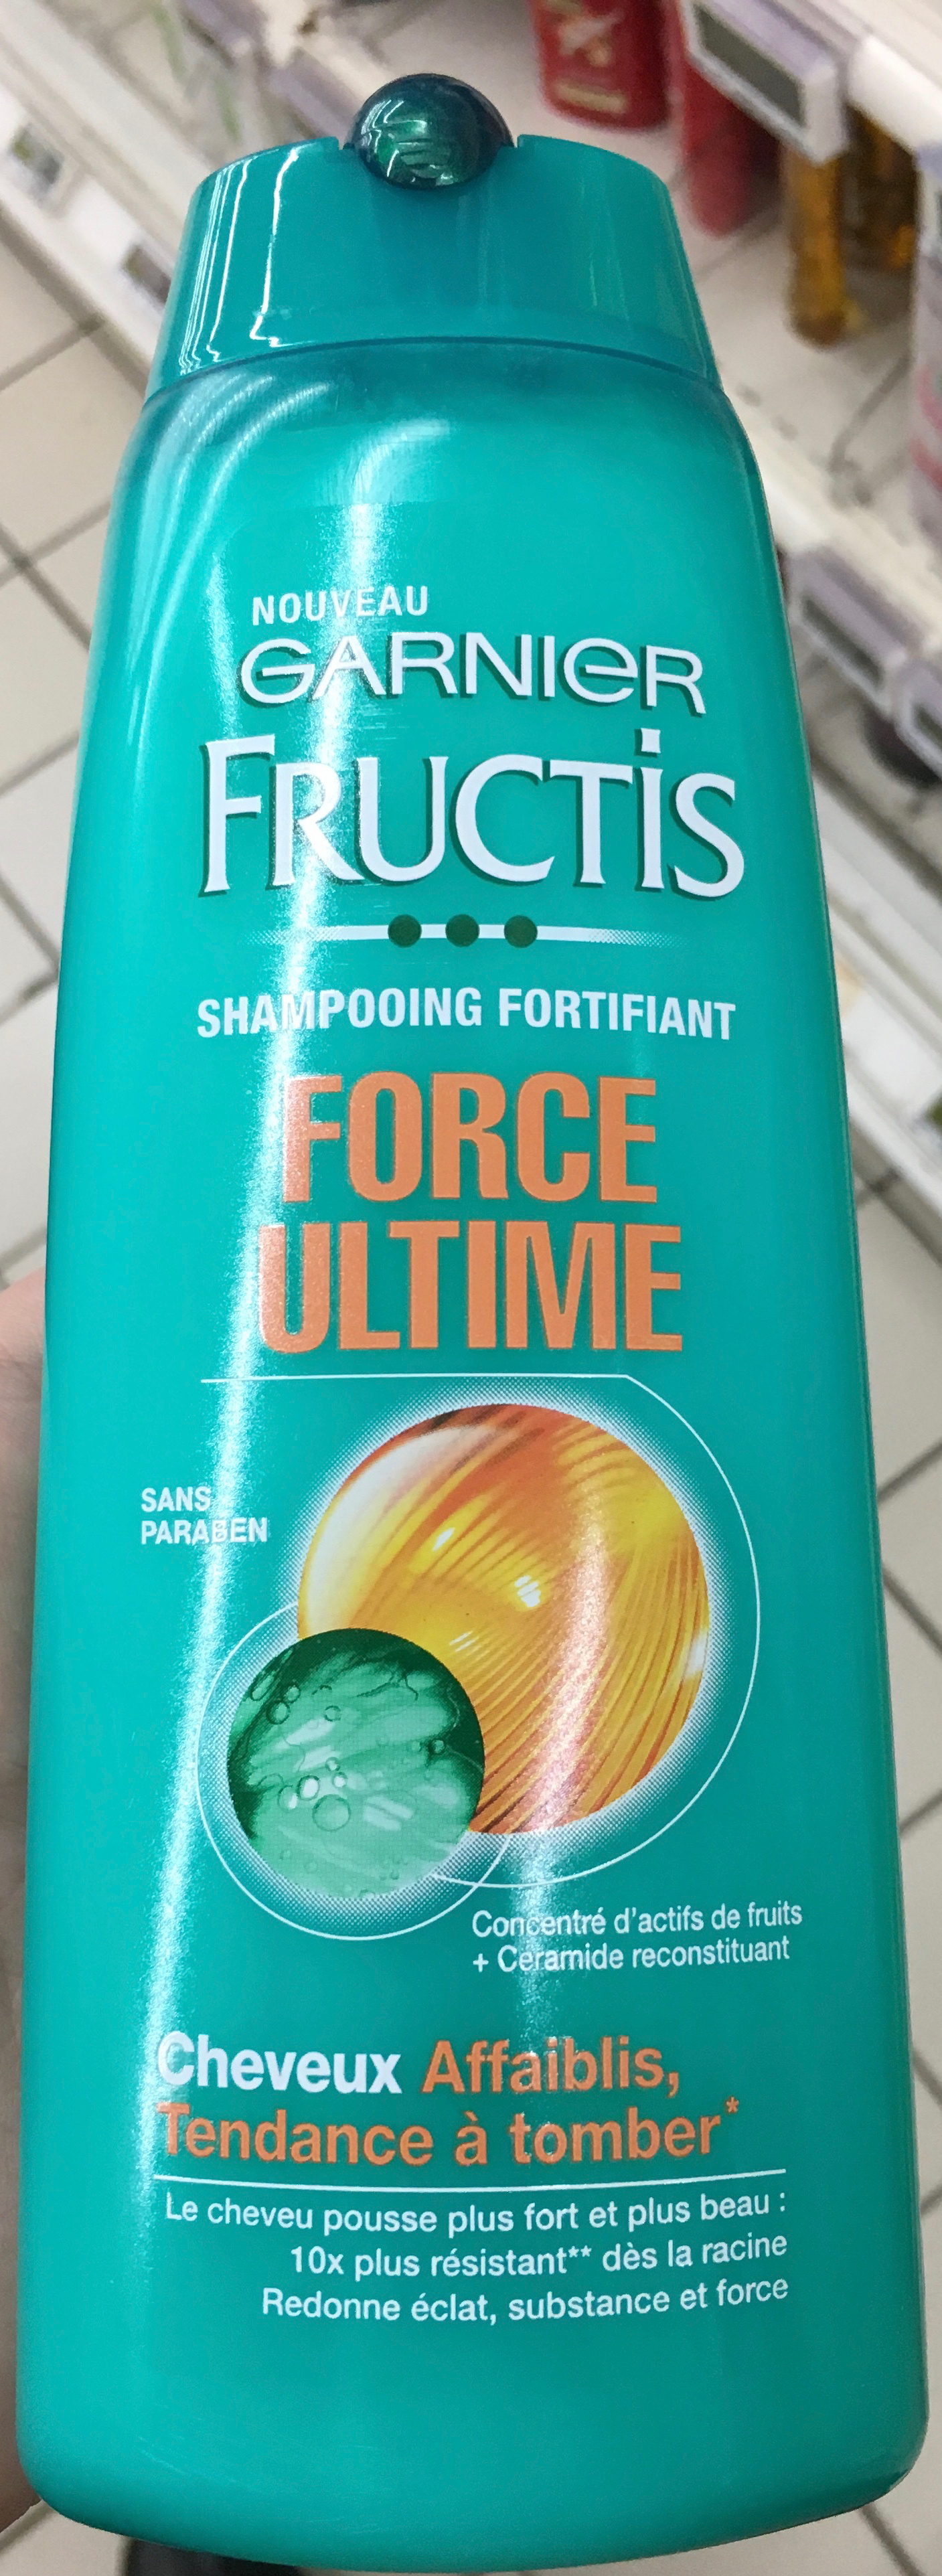 Garnier Fructis Force Ultime - Product